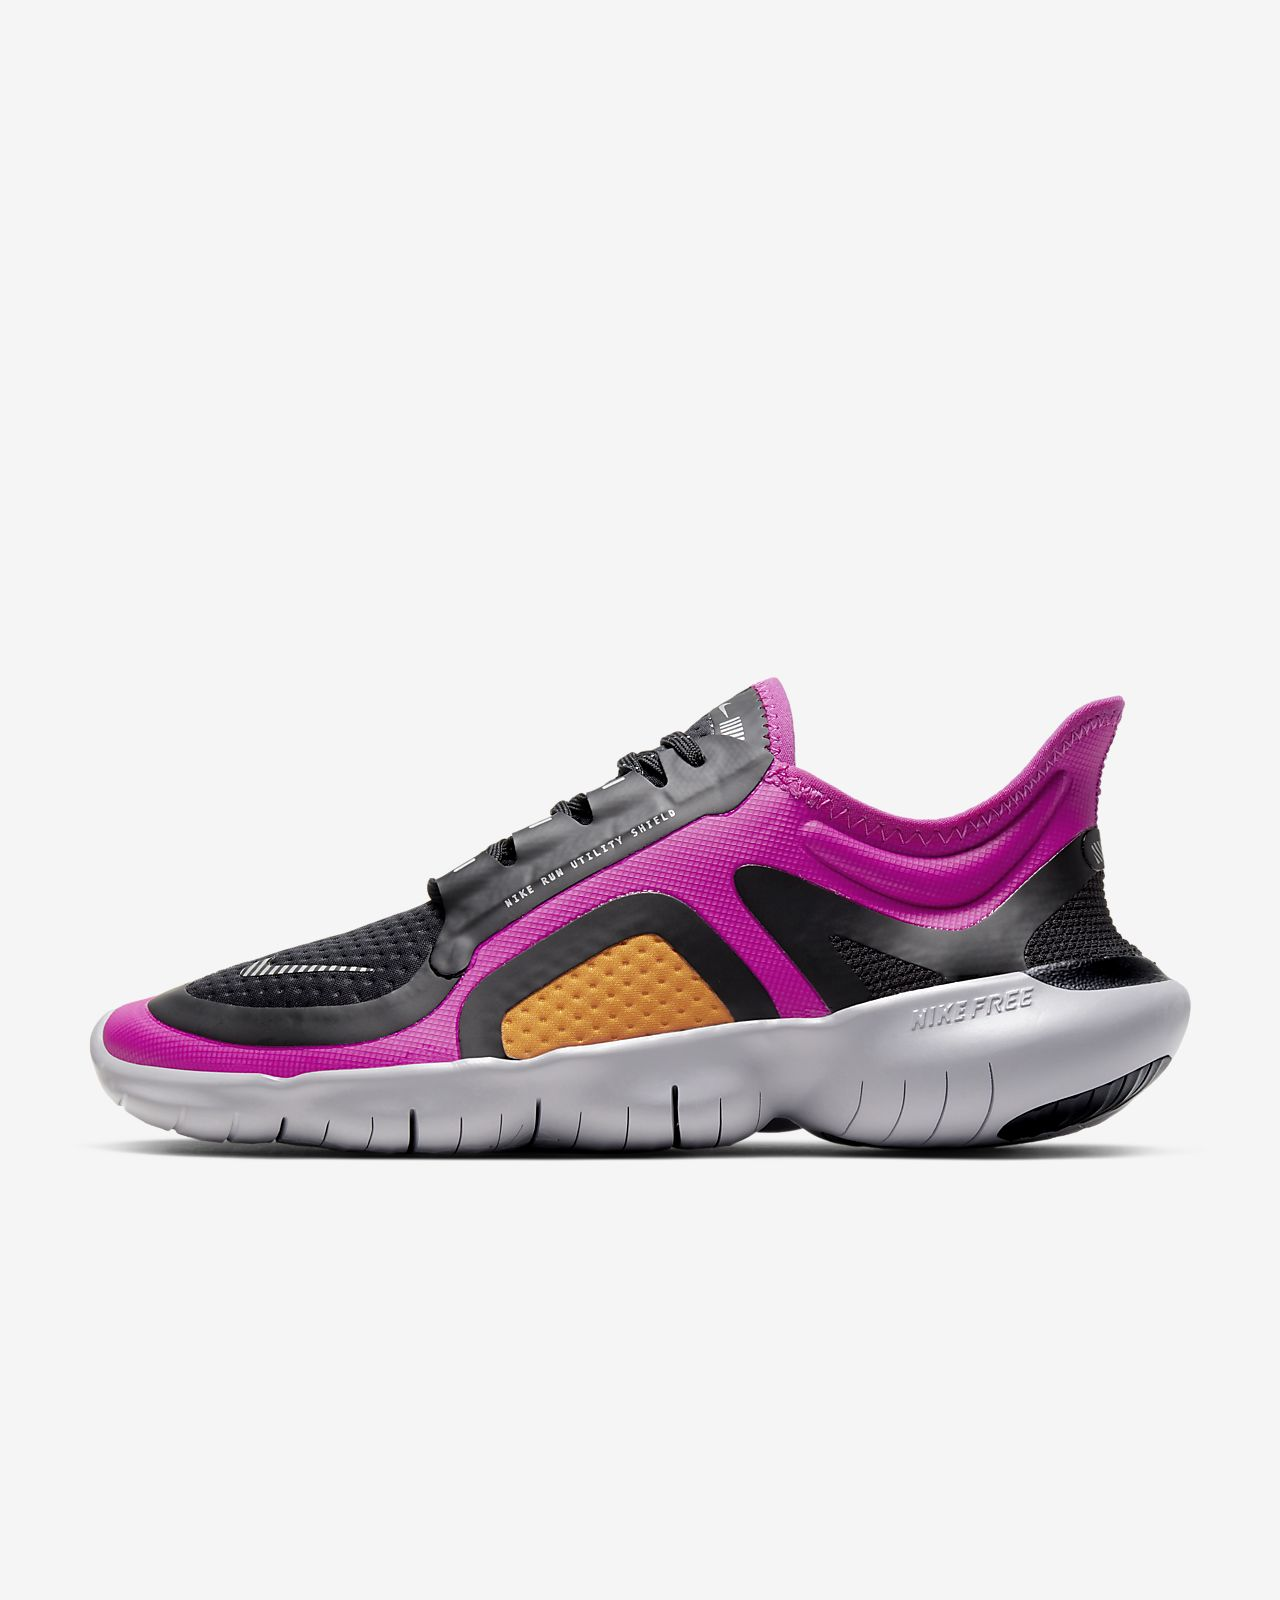 Nike Free RN 5.0 Shield Women's Running Shoe